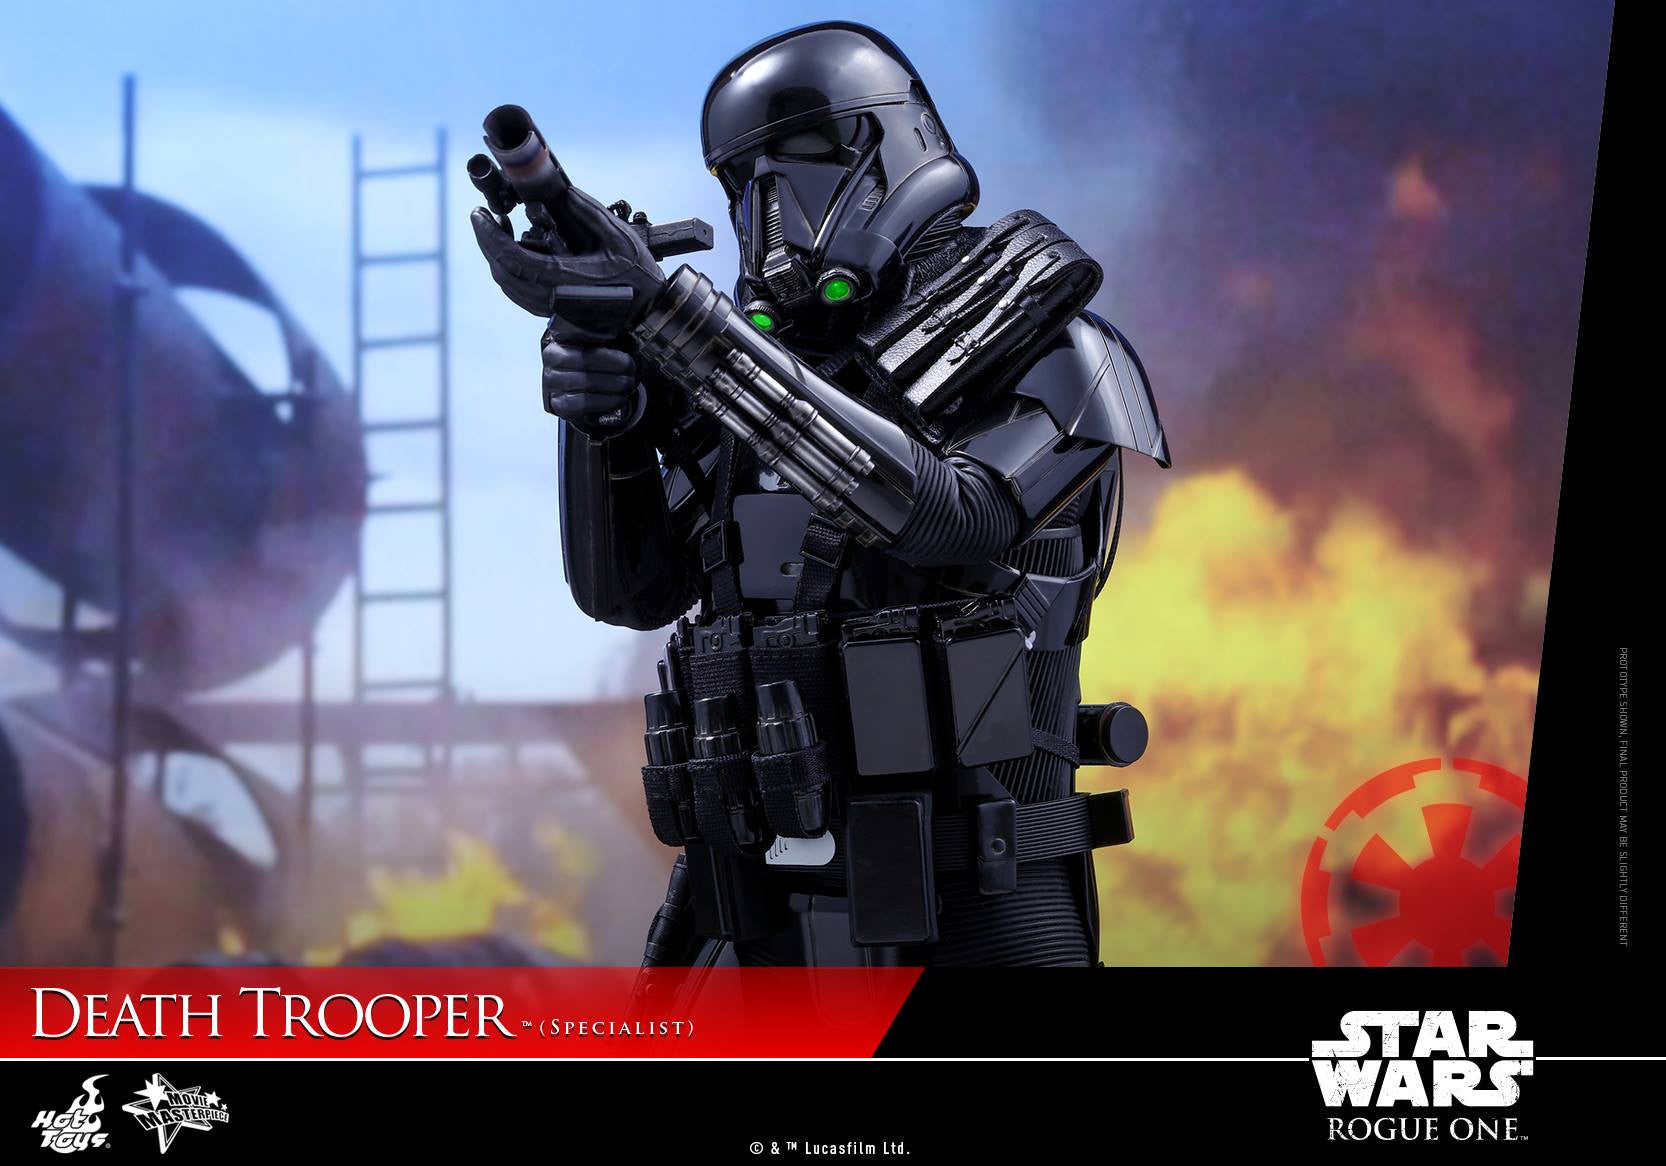 Hot Toys - MMS385 - Rogue One: A Star Wars Story - Death Trooper (Specialist) - Marvelous Toys - 11